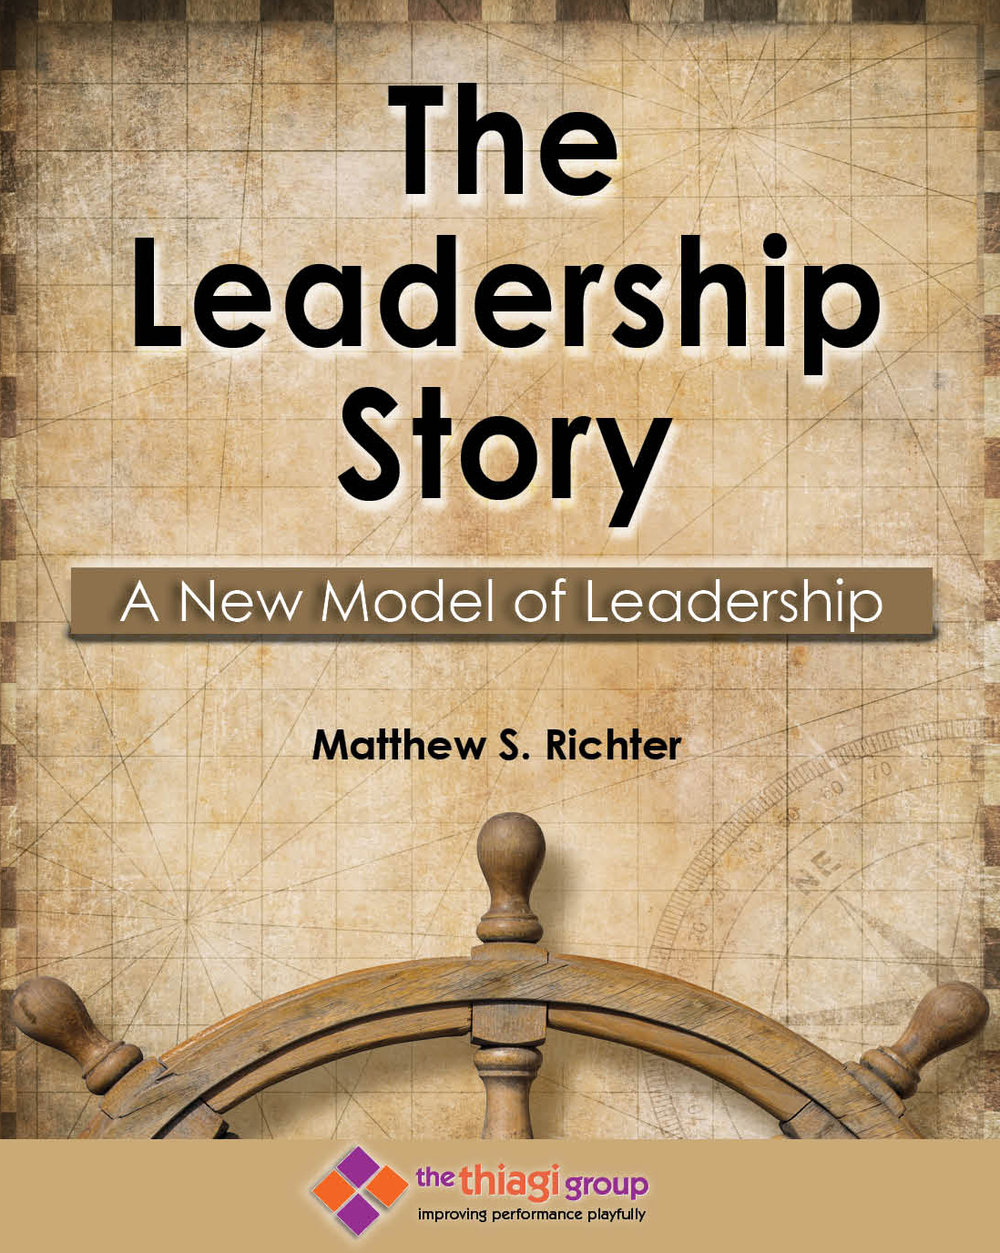 The Leadership Story by Matthew Richter